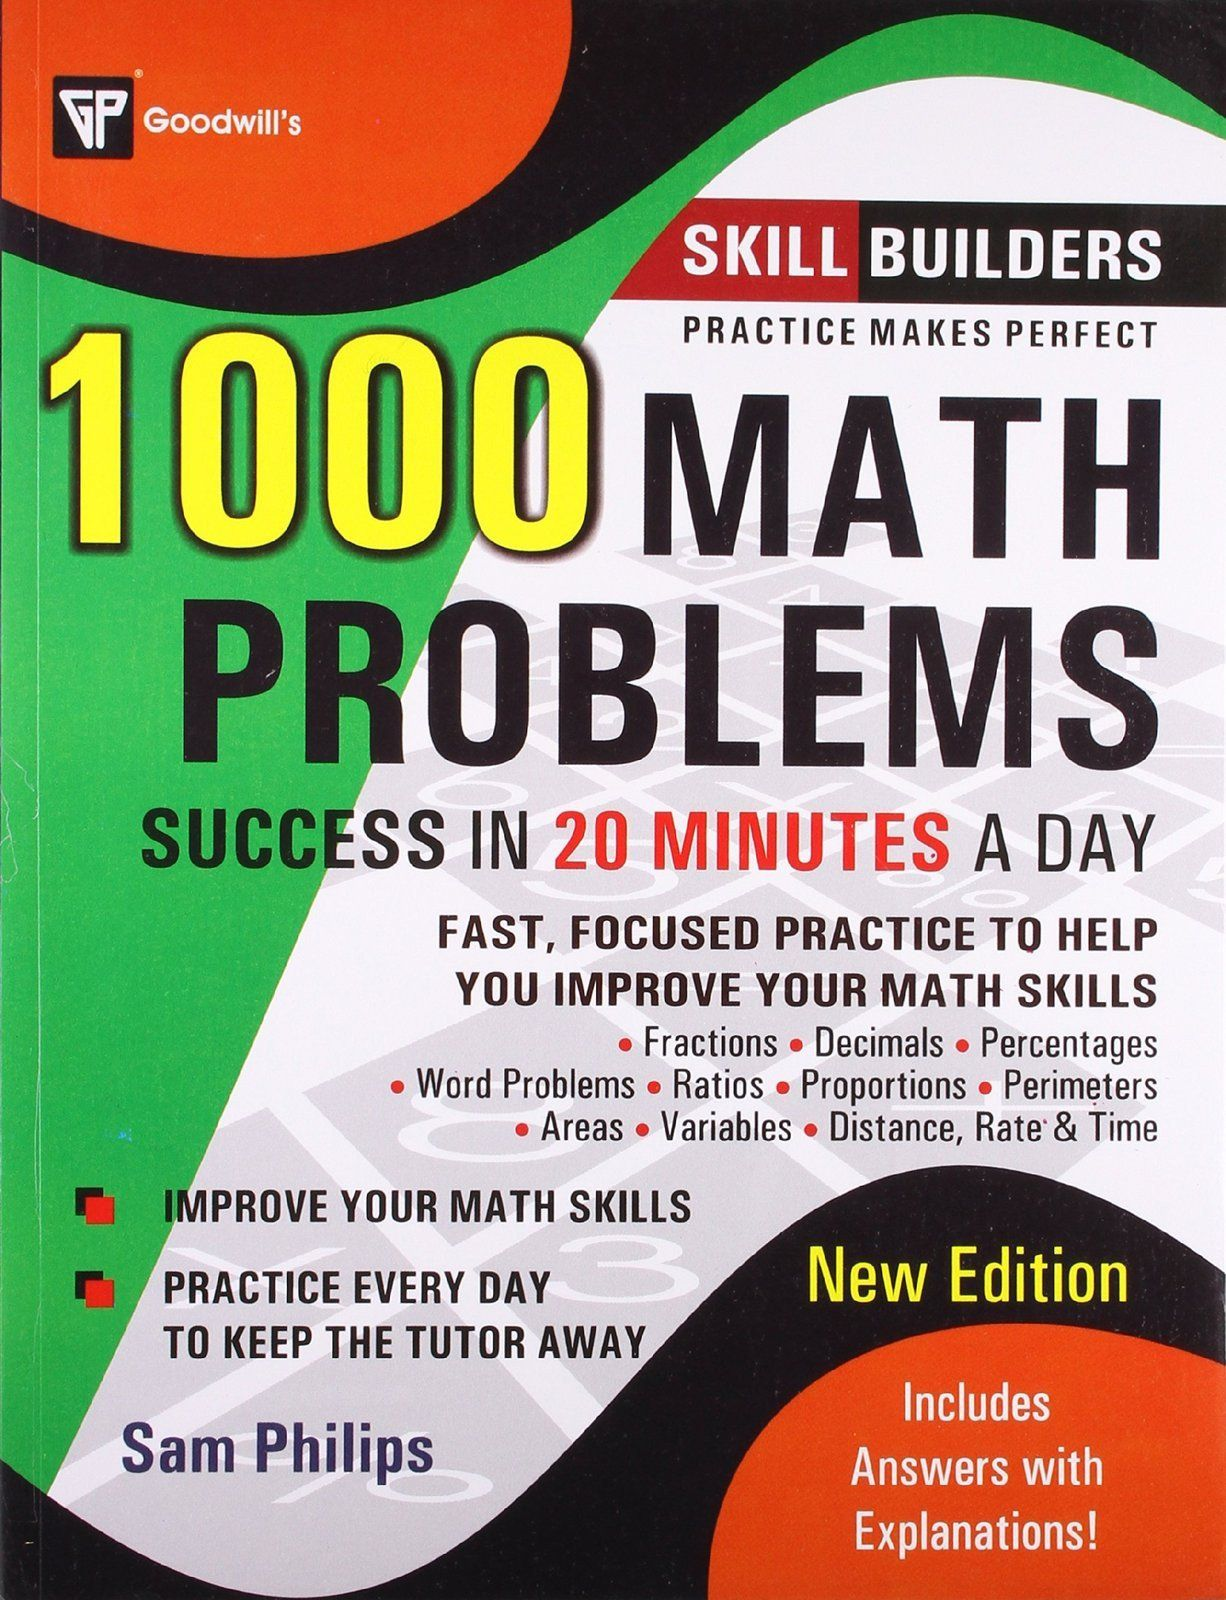 Maths Problems Fast Focused Practice To Help You